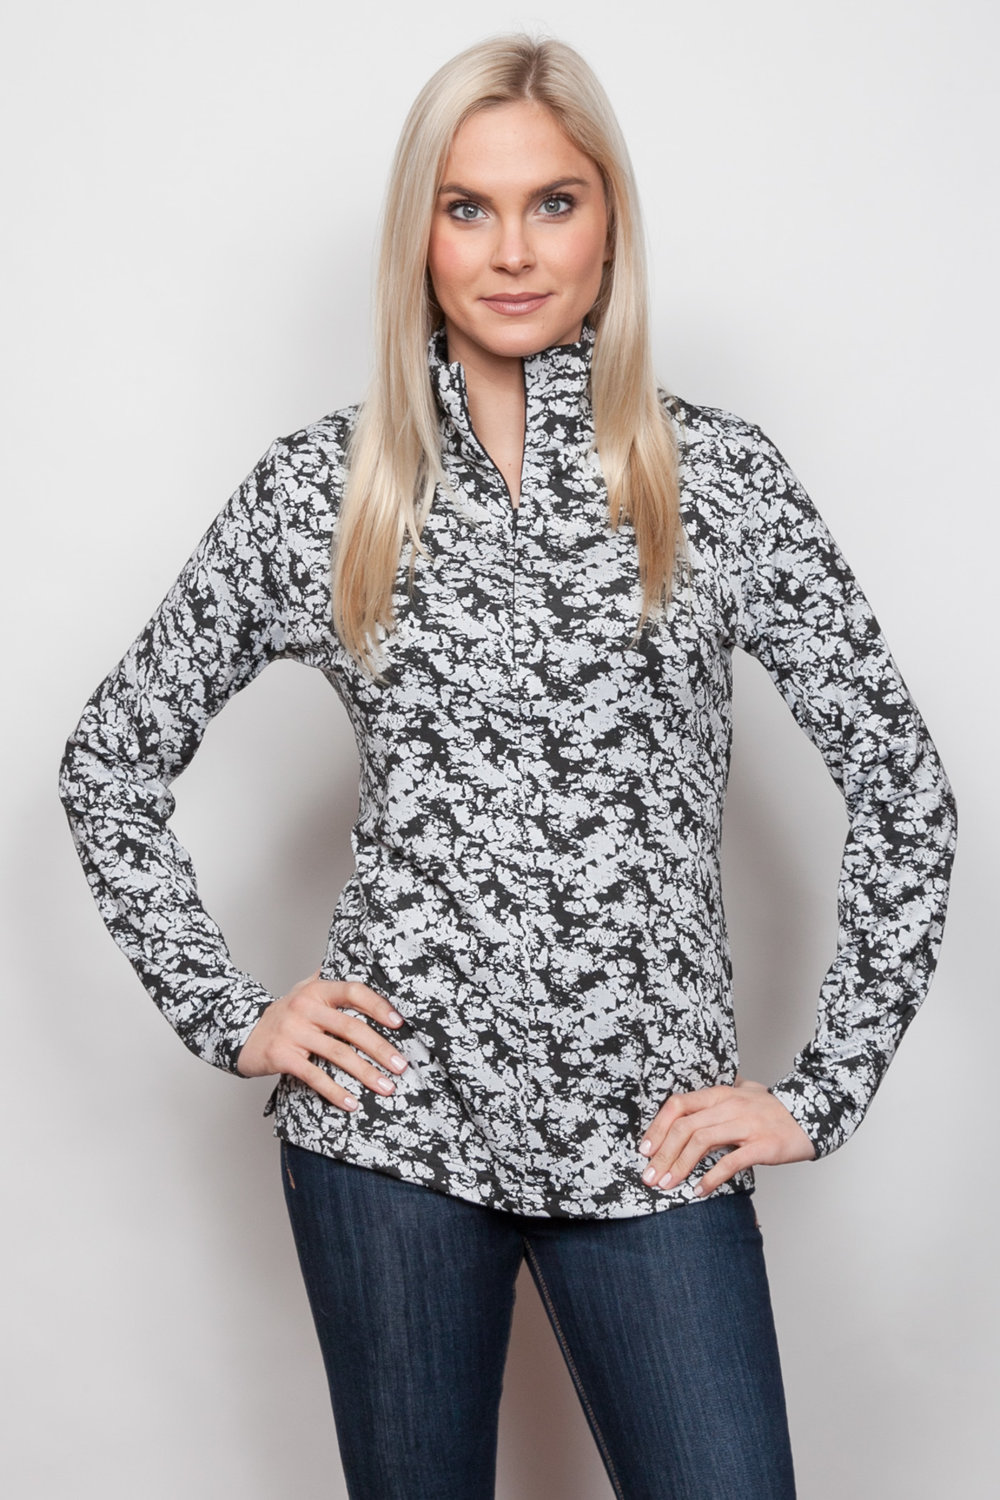 Copy of Style # 38389-18, p 8 </br>Sport Marble Jacq'd </br>Pattern: Marble